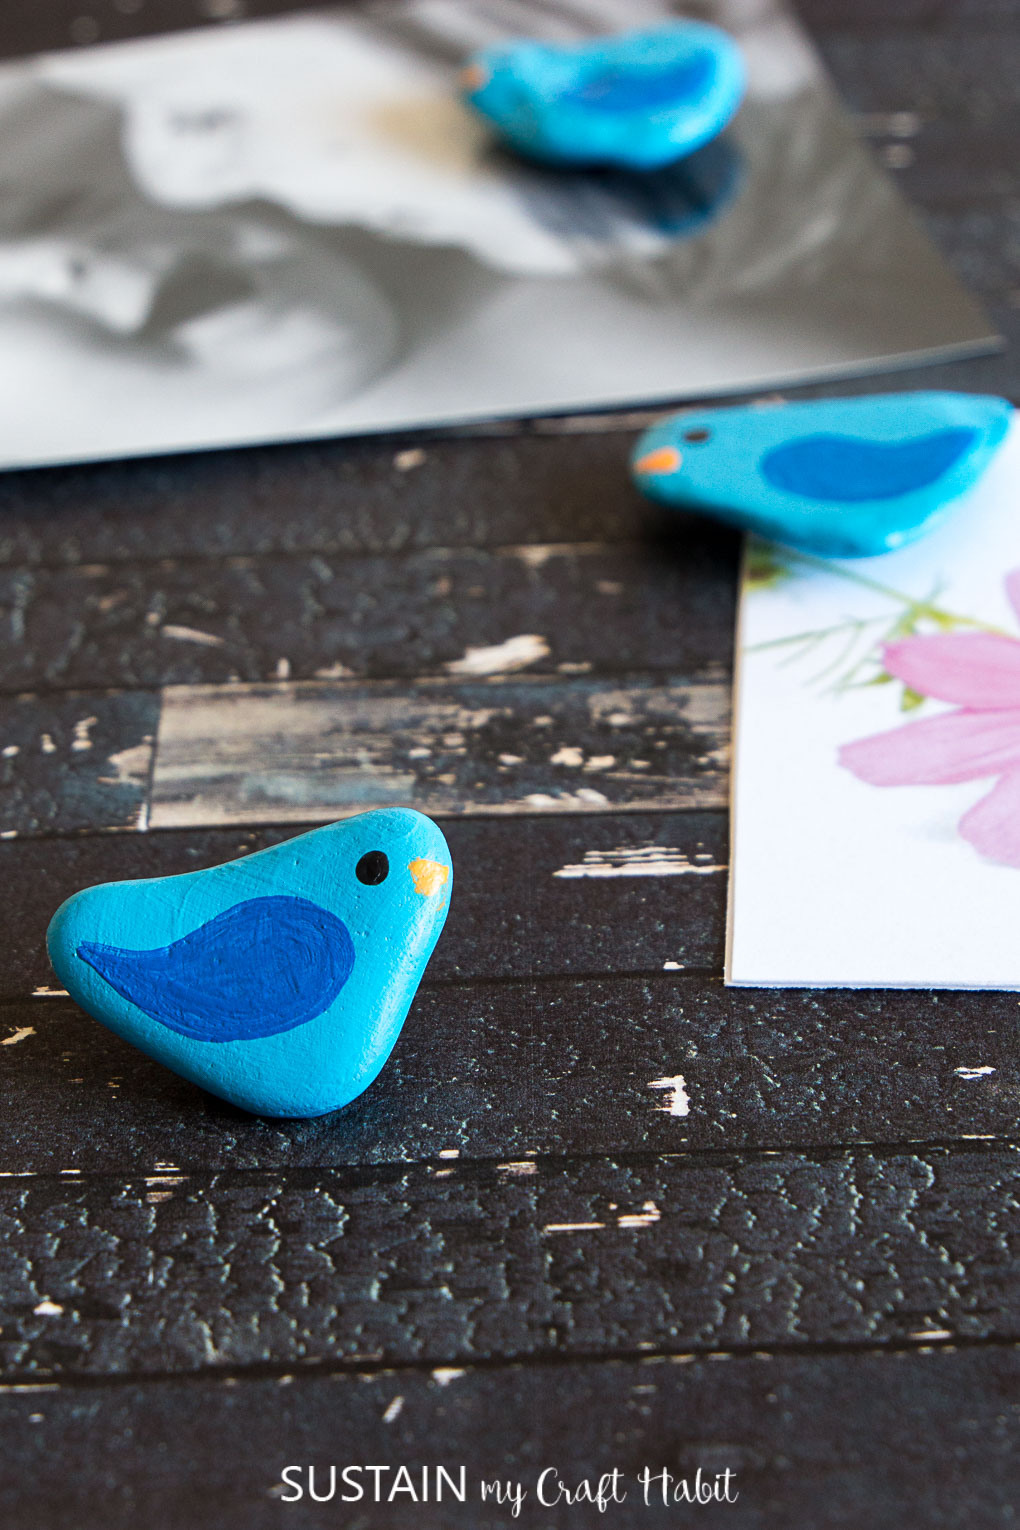 Small rocks painted to look like teal and blue birds placed on a dark wood background